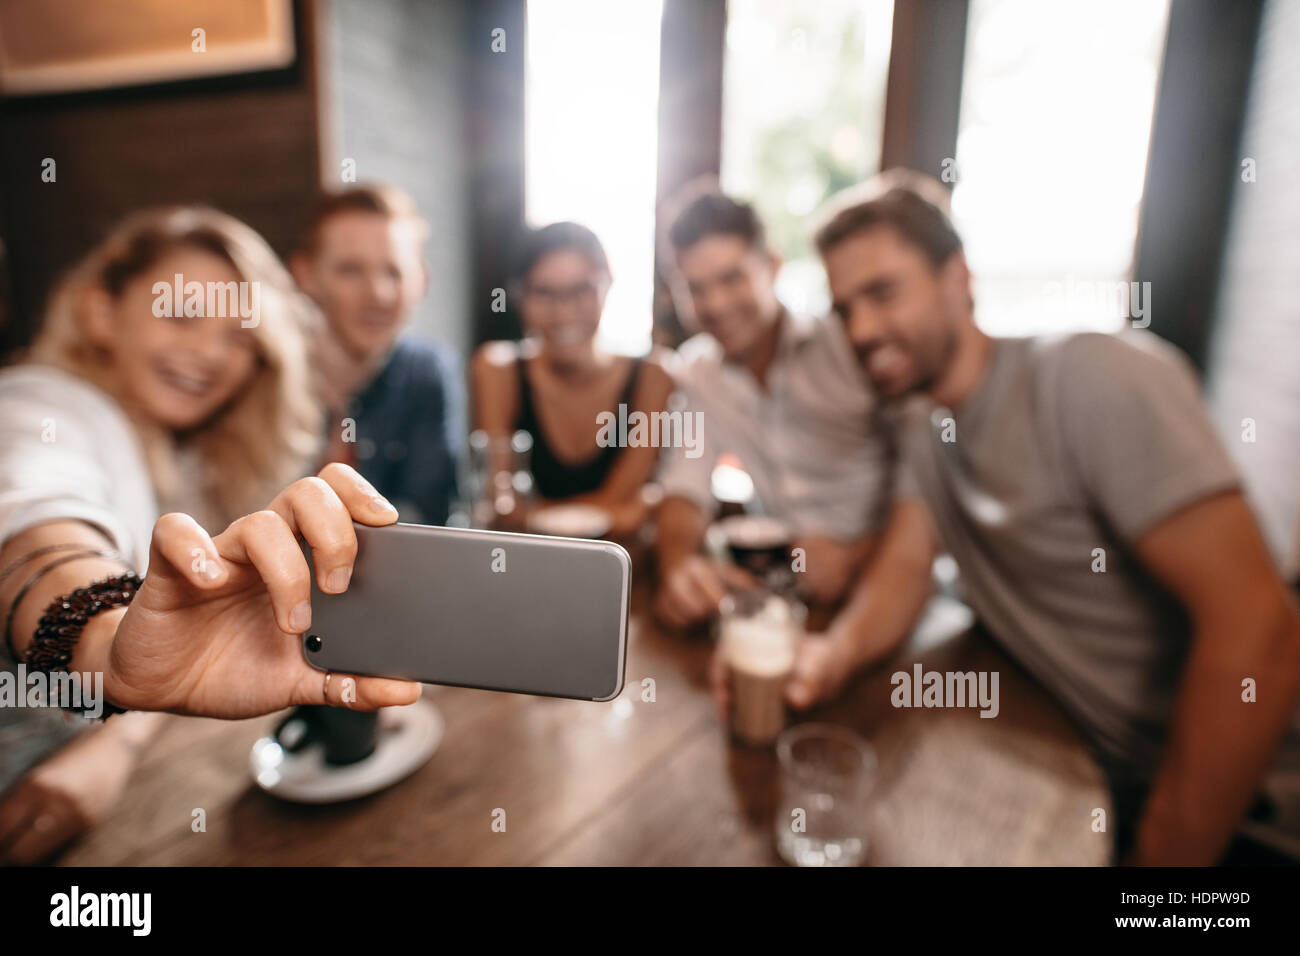 Group of young people taking a selfie at cafe. Young friends at restaurant taking self portrait. - Stock Image